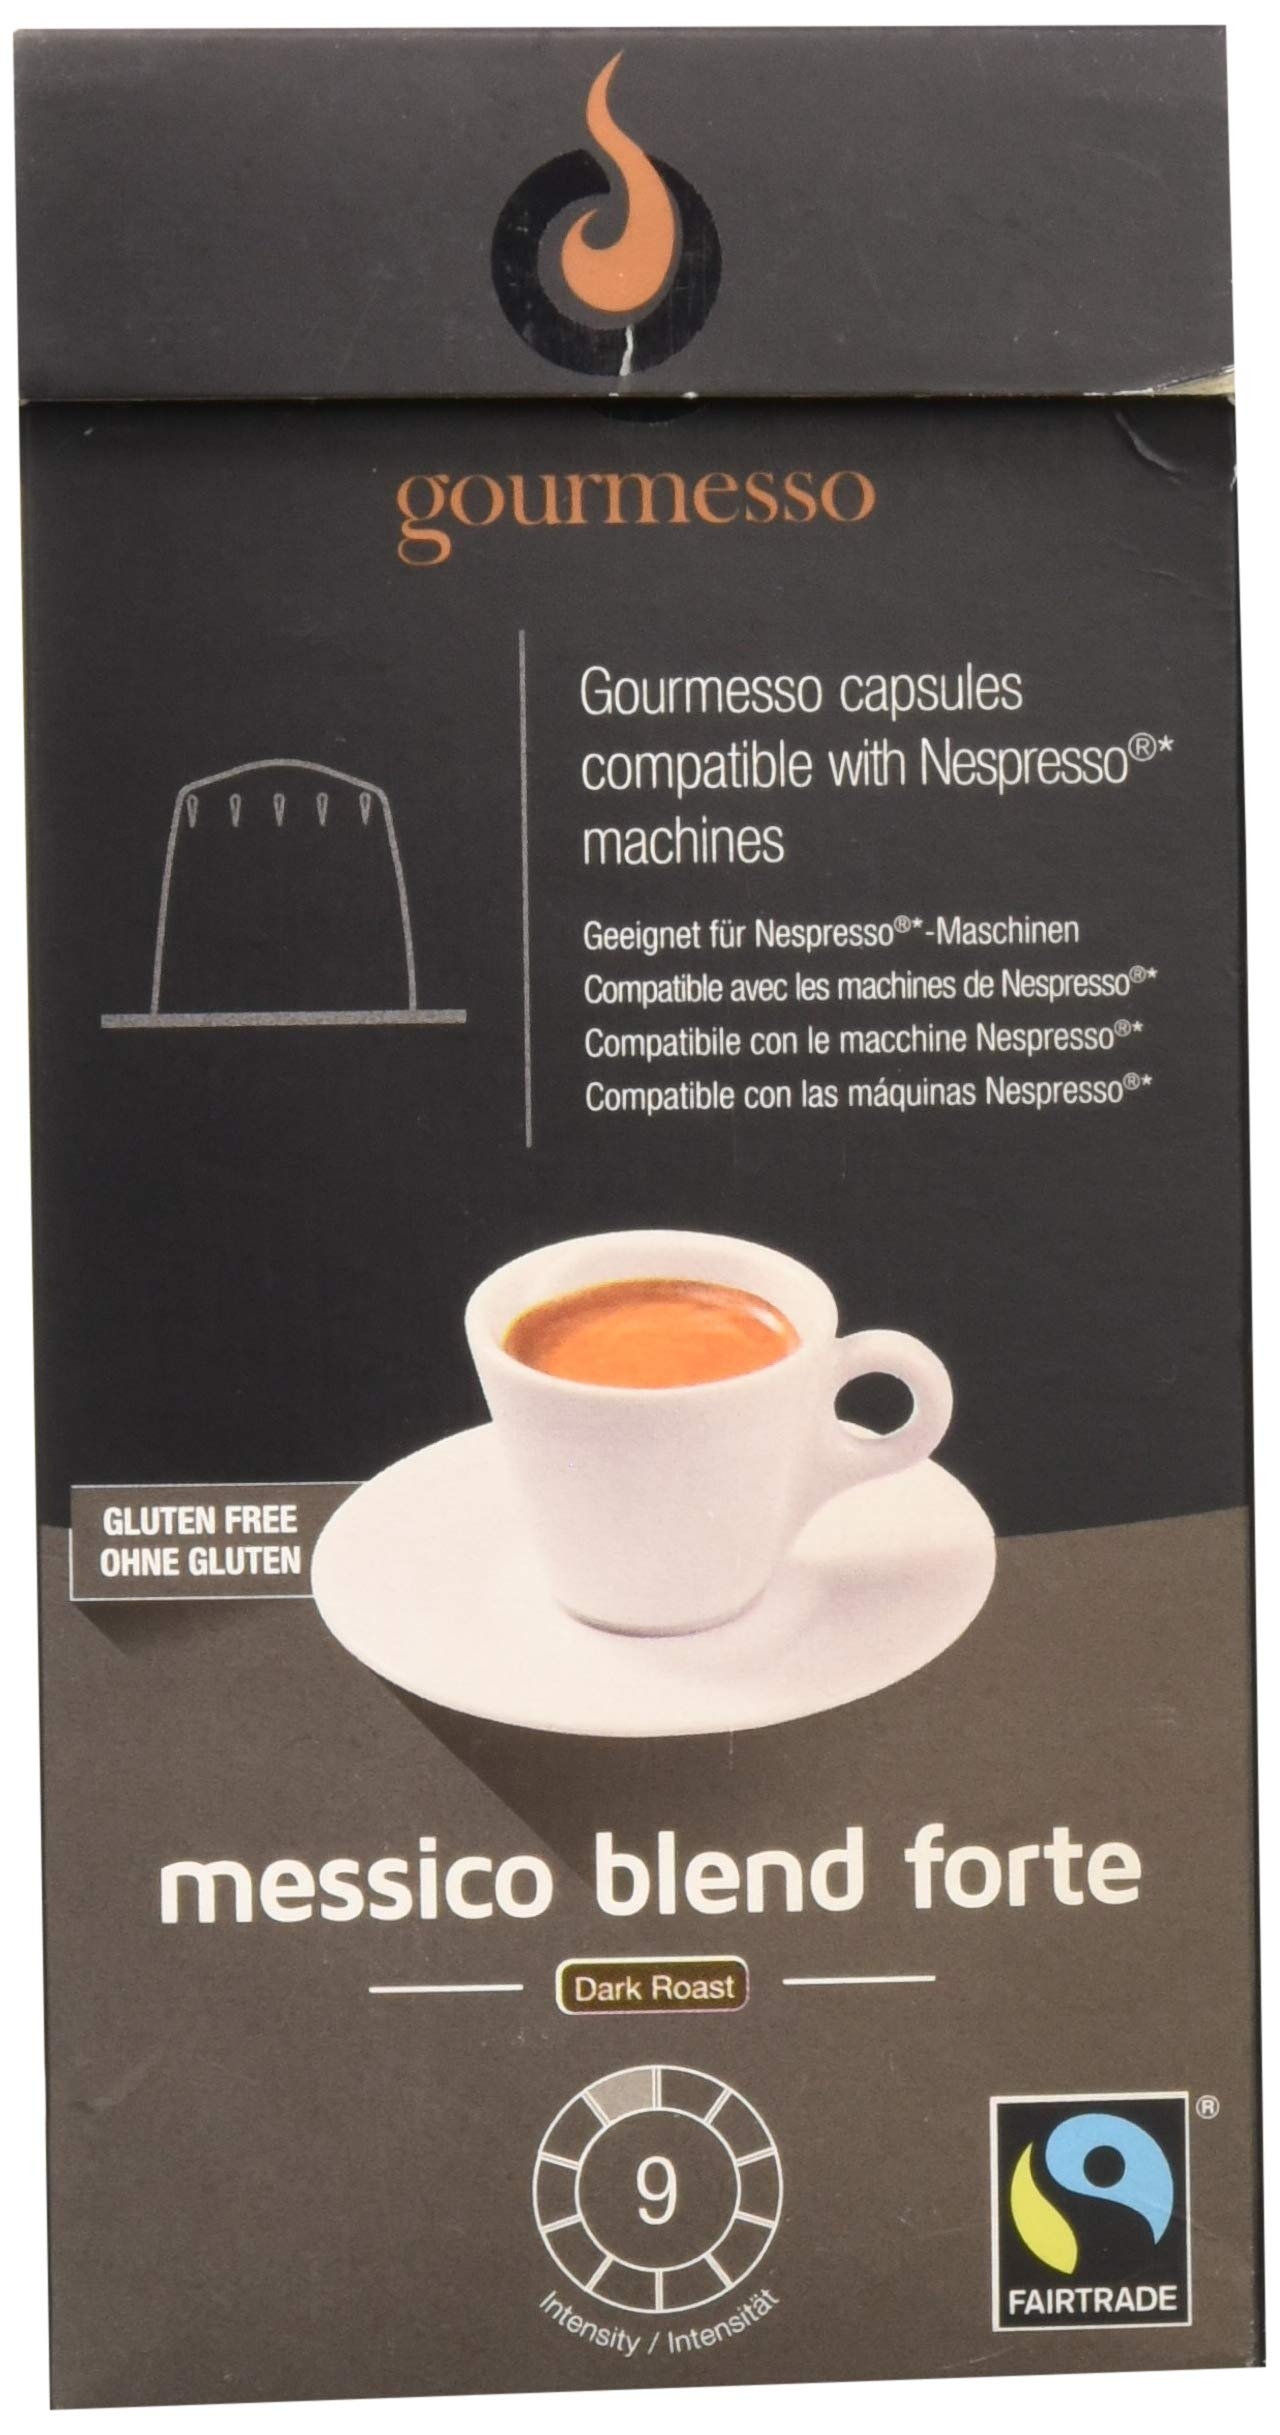 Gourmesso Messico Blend Forte - 10 Nespresso Compatible Coffee Capsules - Fair Trade